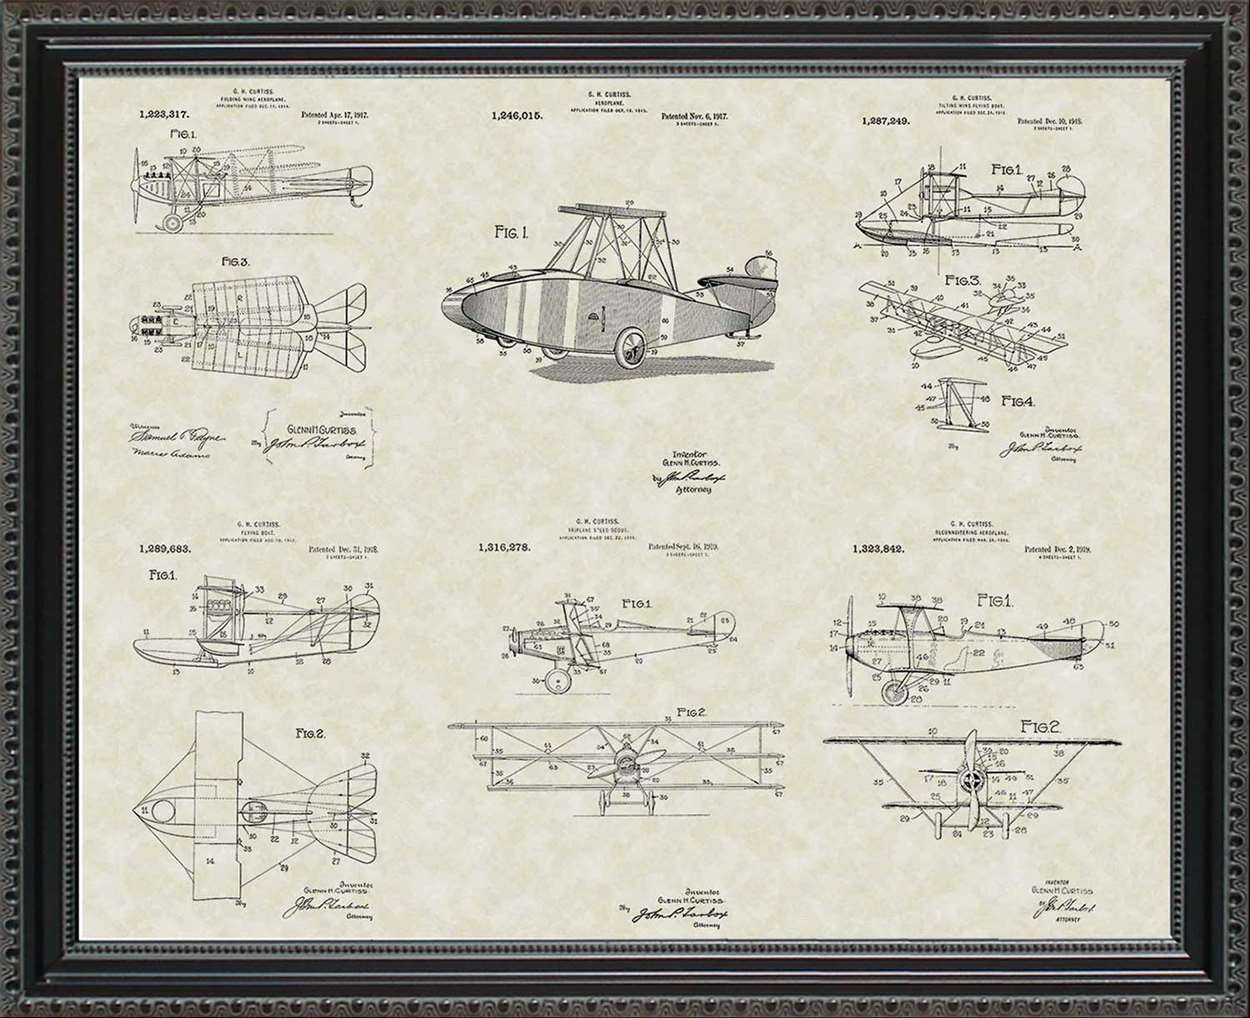 Glenn Curtiss Aircraft Patents, 20x24